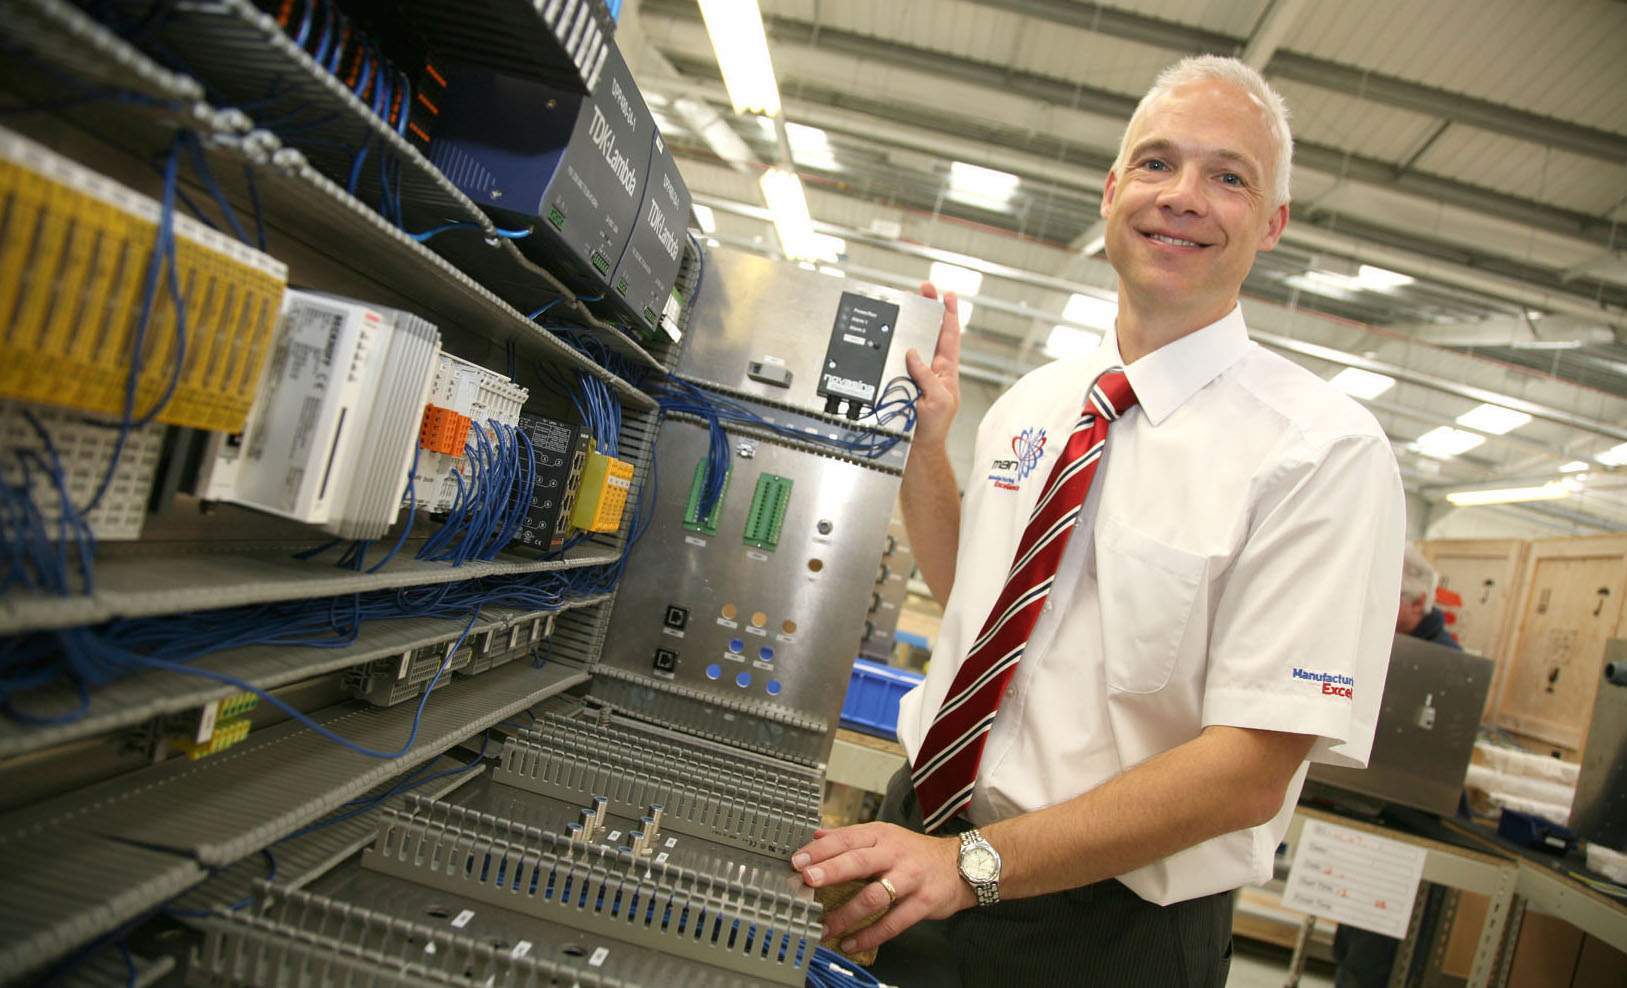 SME manufacturing role model calls for greater investment